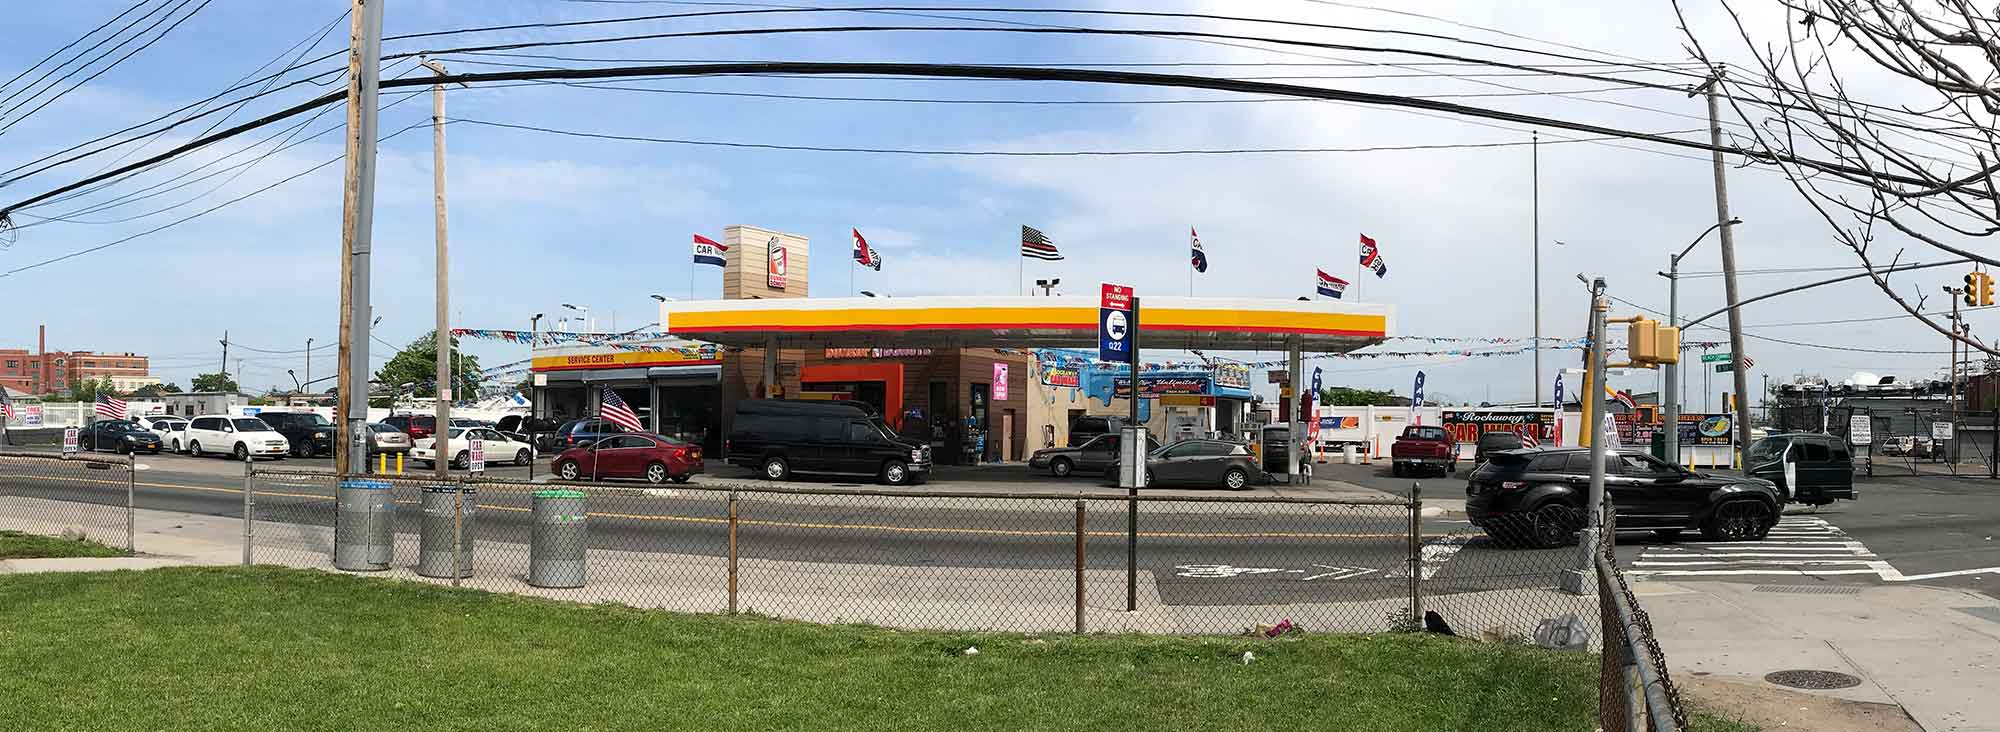 Home Arverne Rockaway Beach Auto Repair Car Wash Channel Drive